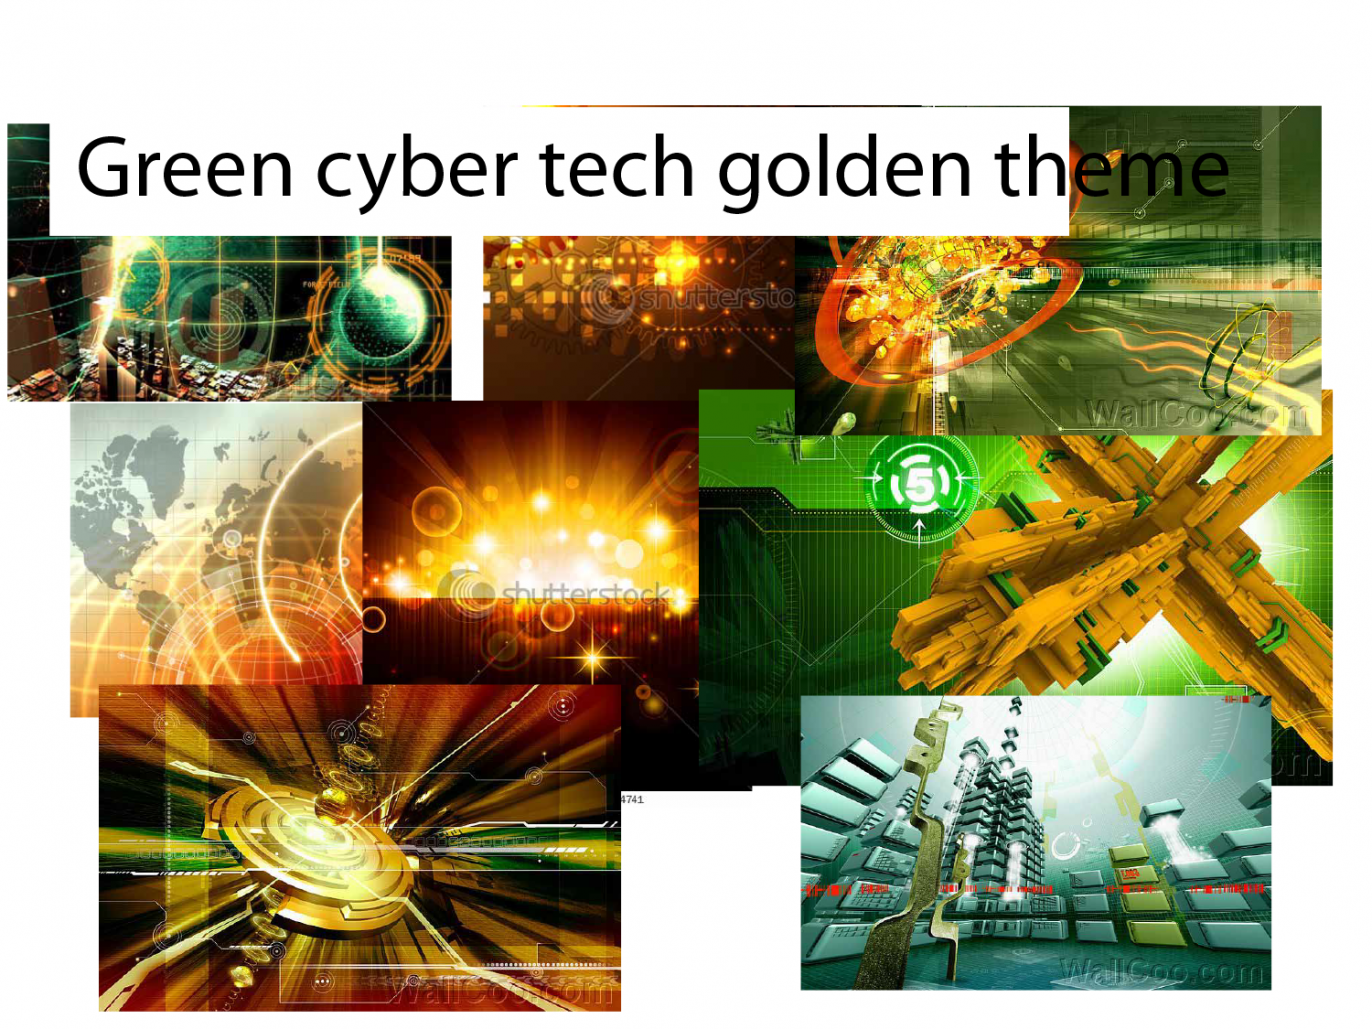 image showing green and gold cyber tech looking images